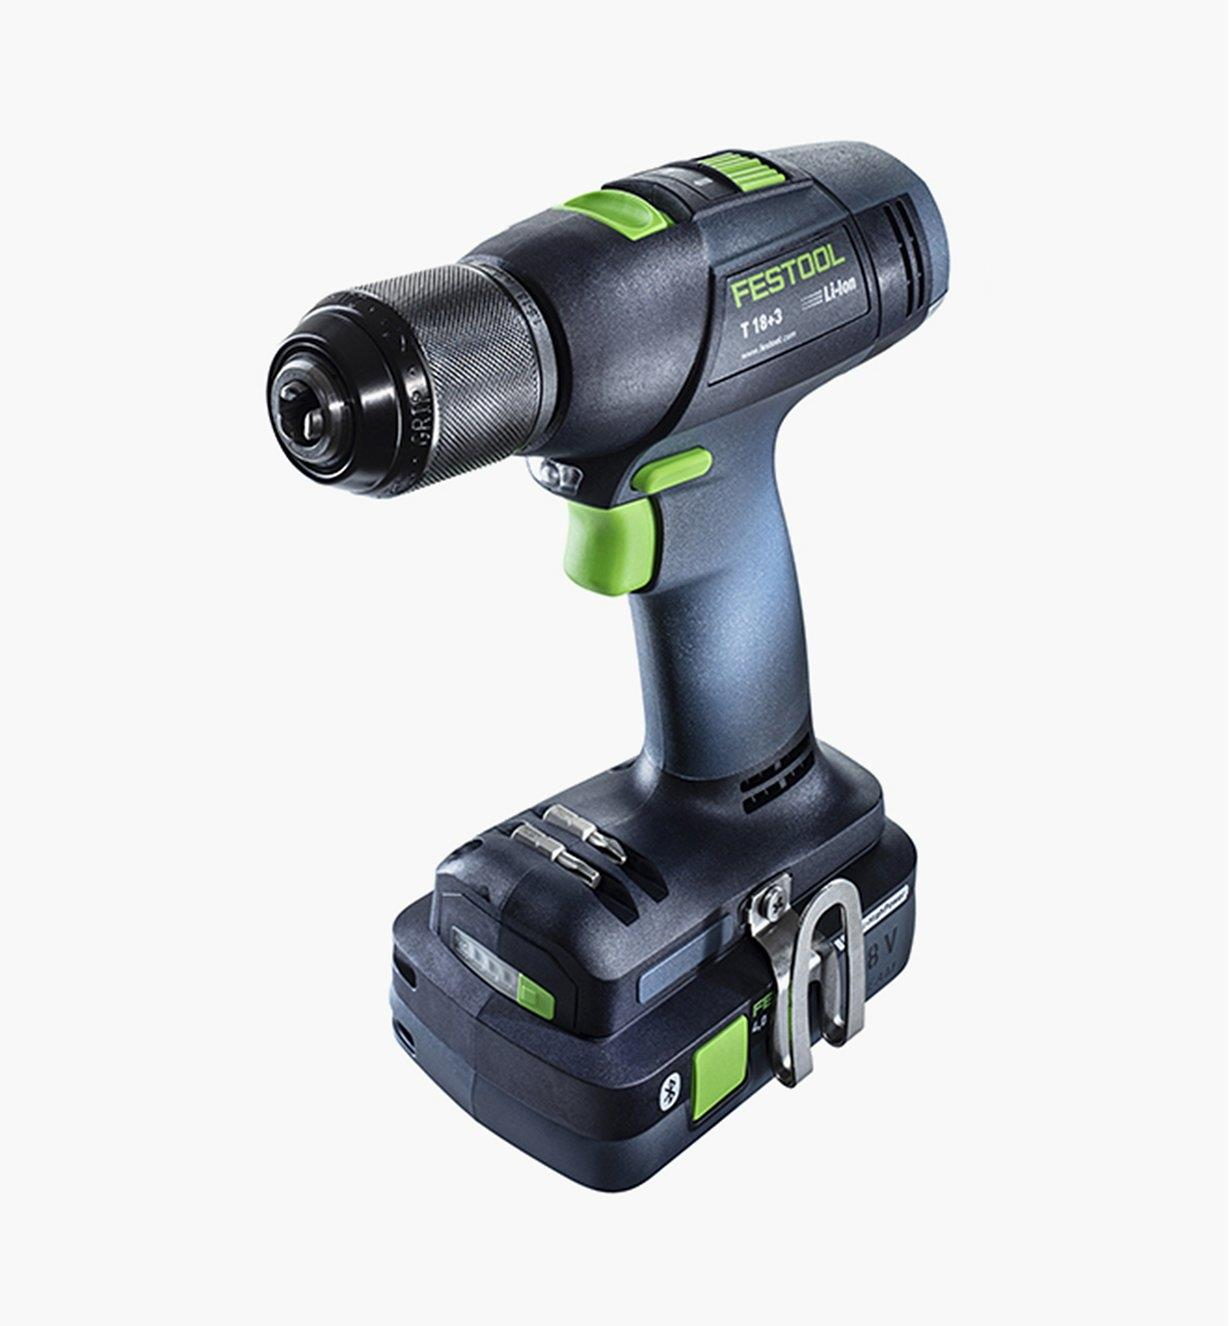 Festool T 18 3 Easy Cordless Drill Basic (battery shown not included)